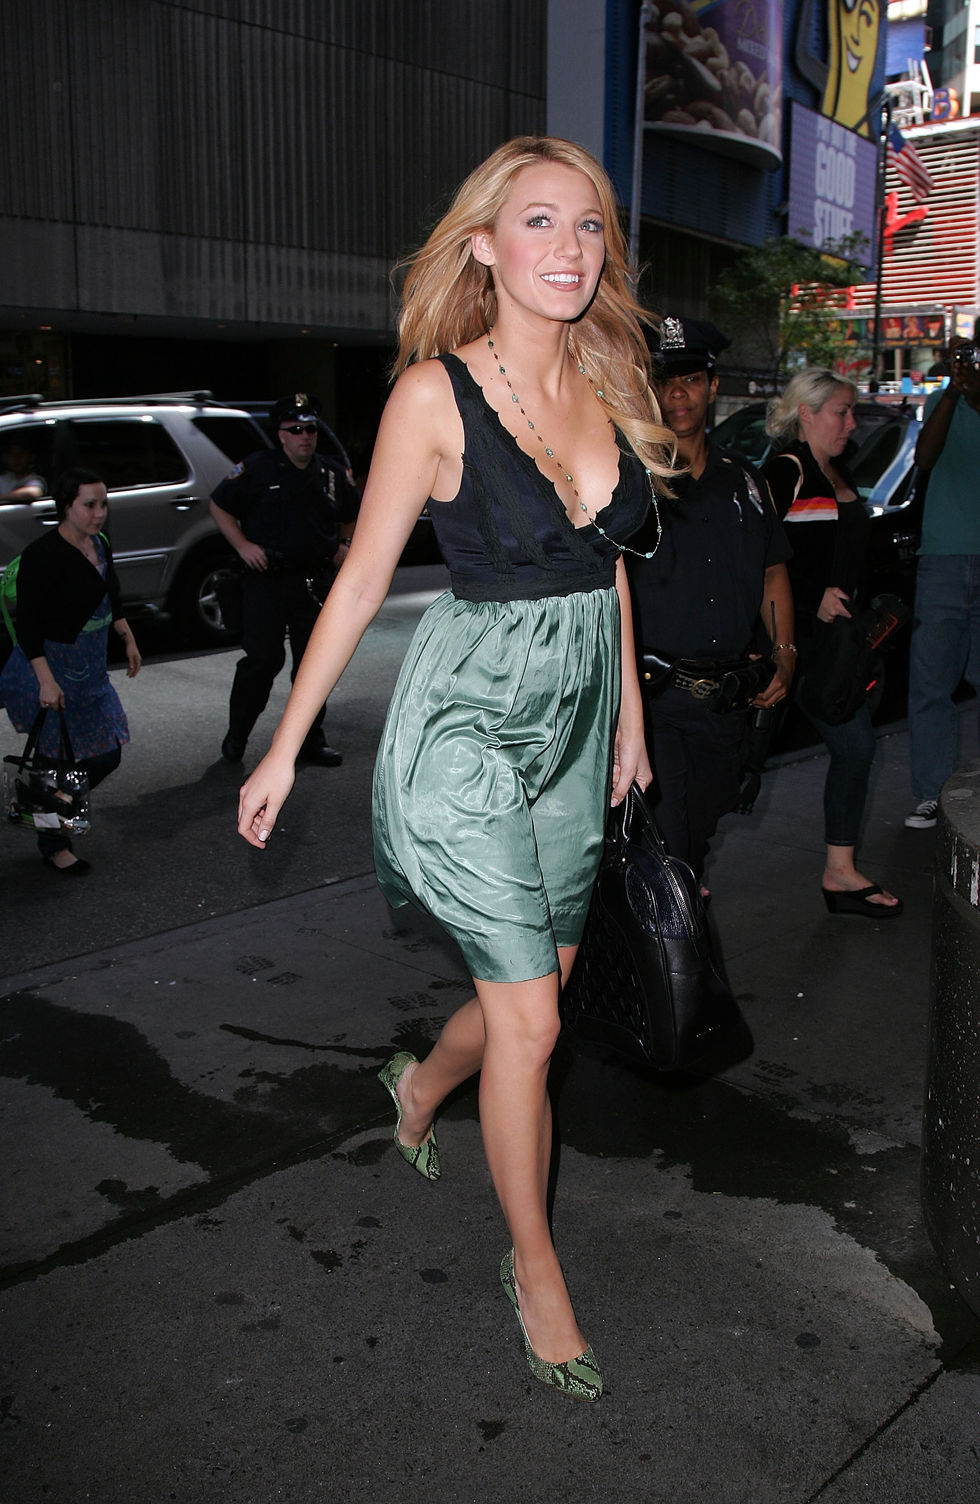 blake-lively-at-mtv-studios-for-mtvs-trl-in-new-york-city-18